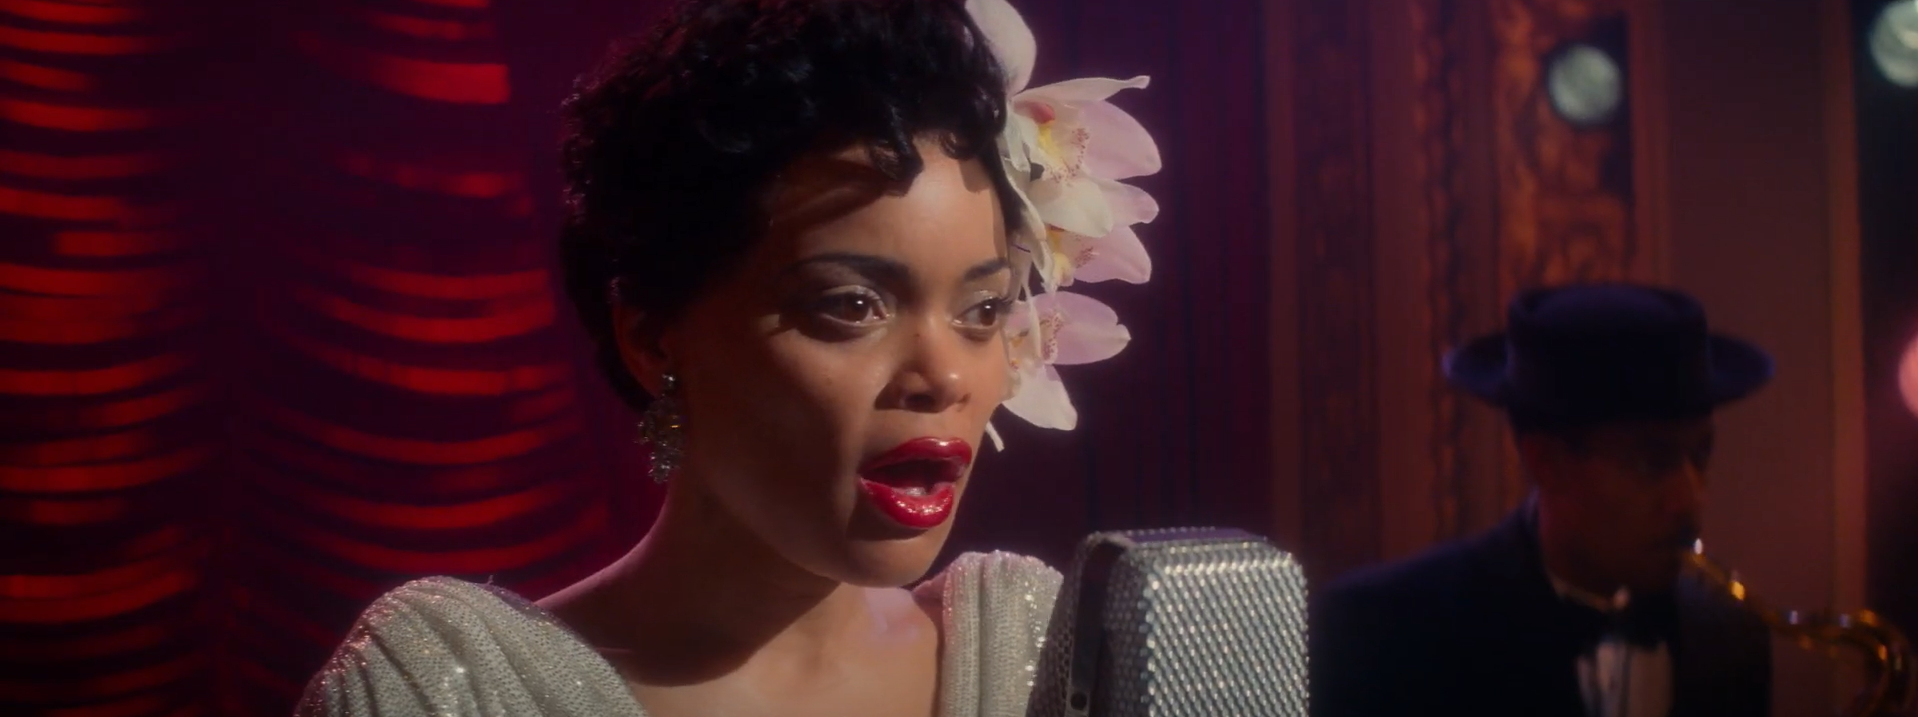 Billie Holiday (Andra Day) - Billie Holiday, une affaire d'état